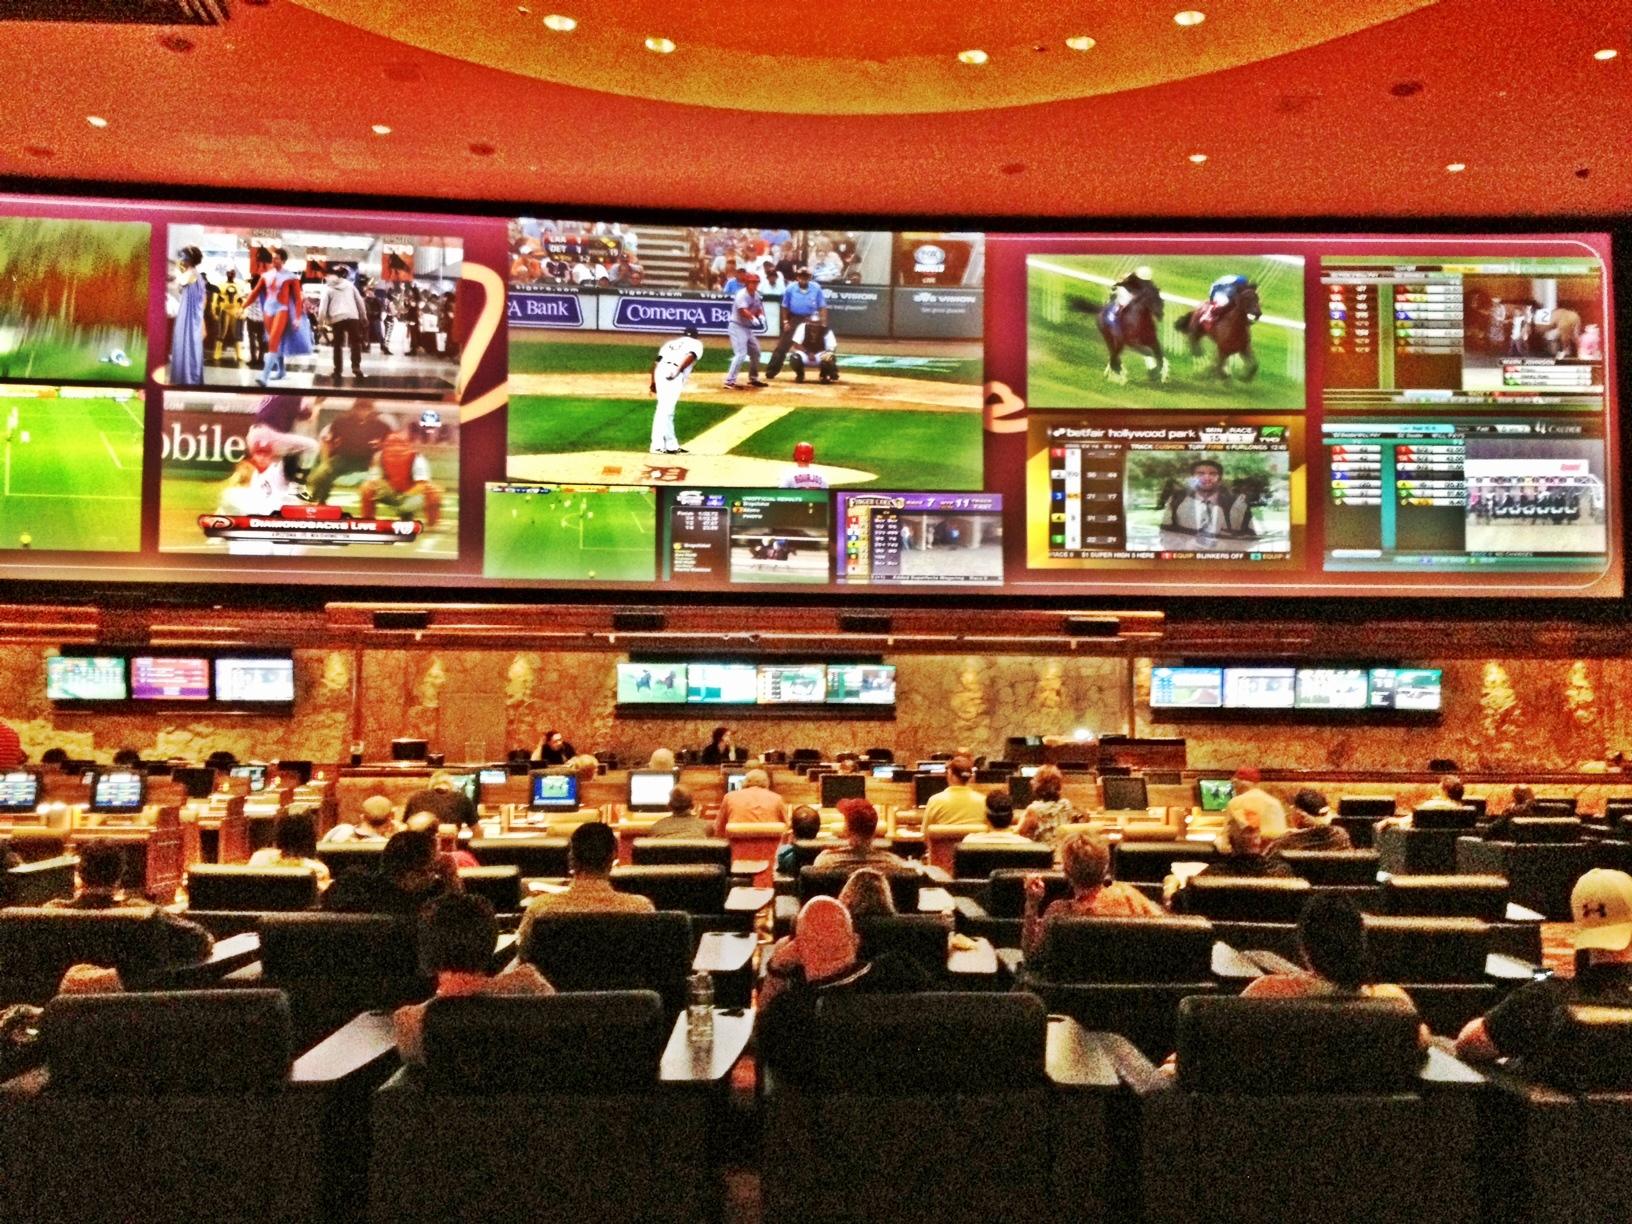 palms casino sportsbook bet on that